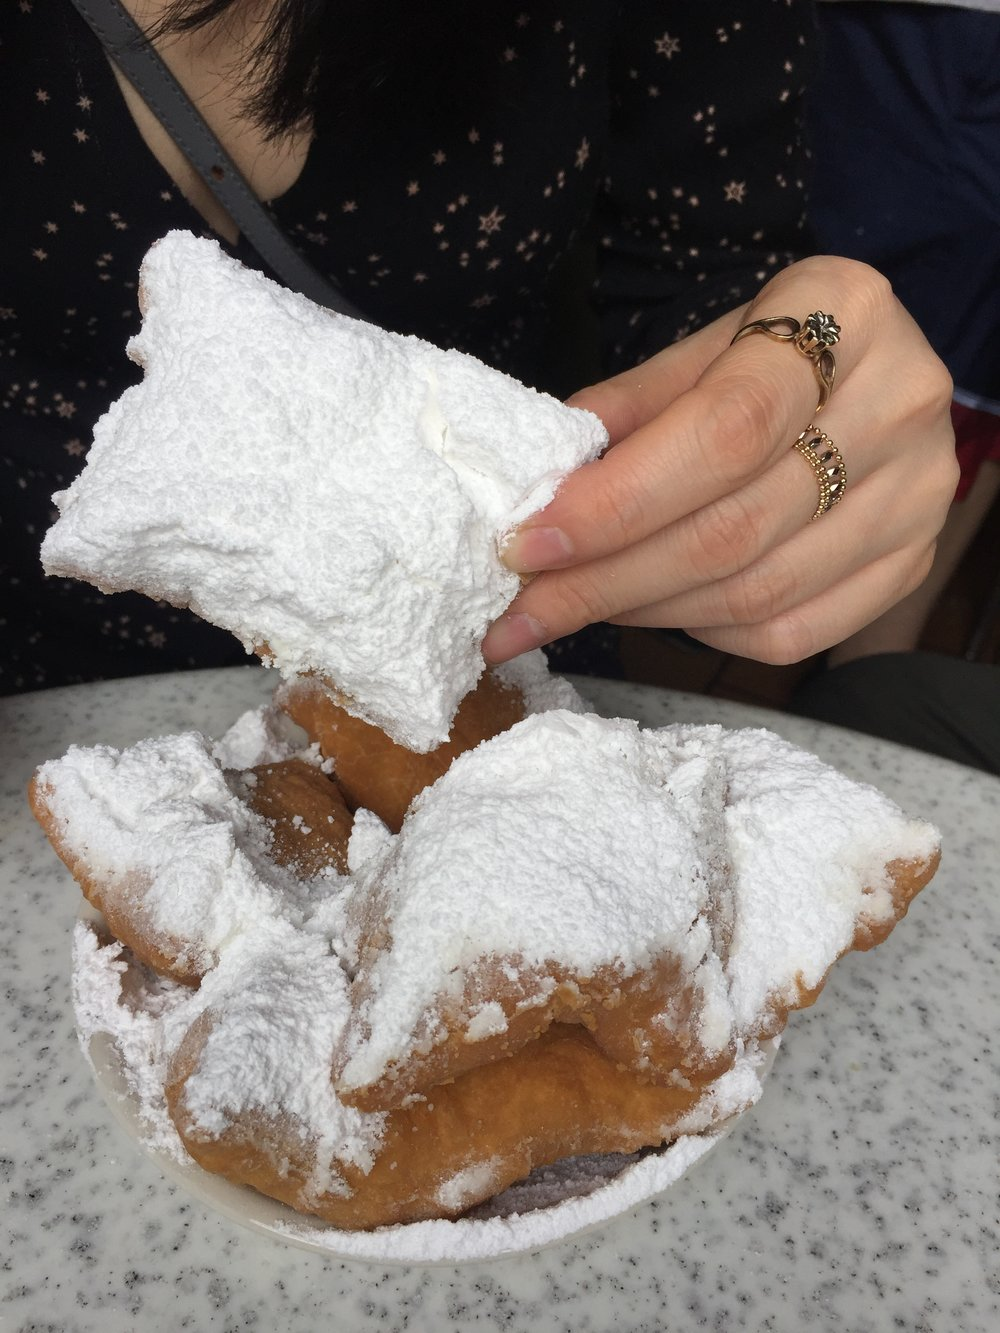 NOLA-french-quarters-cafe-du-monde-beignets